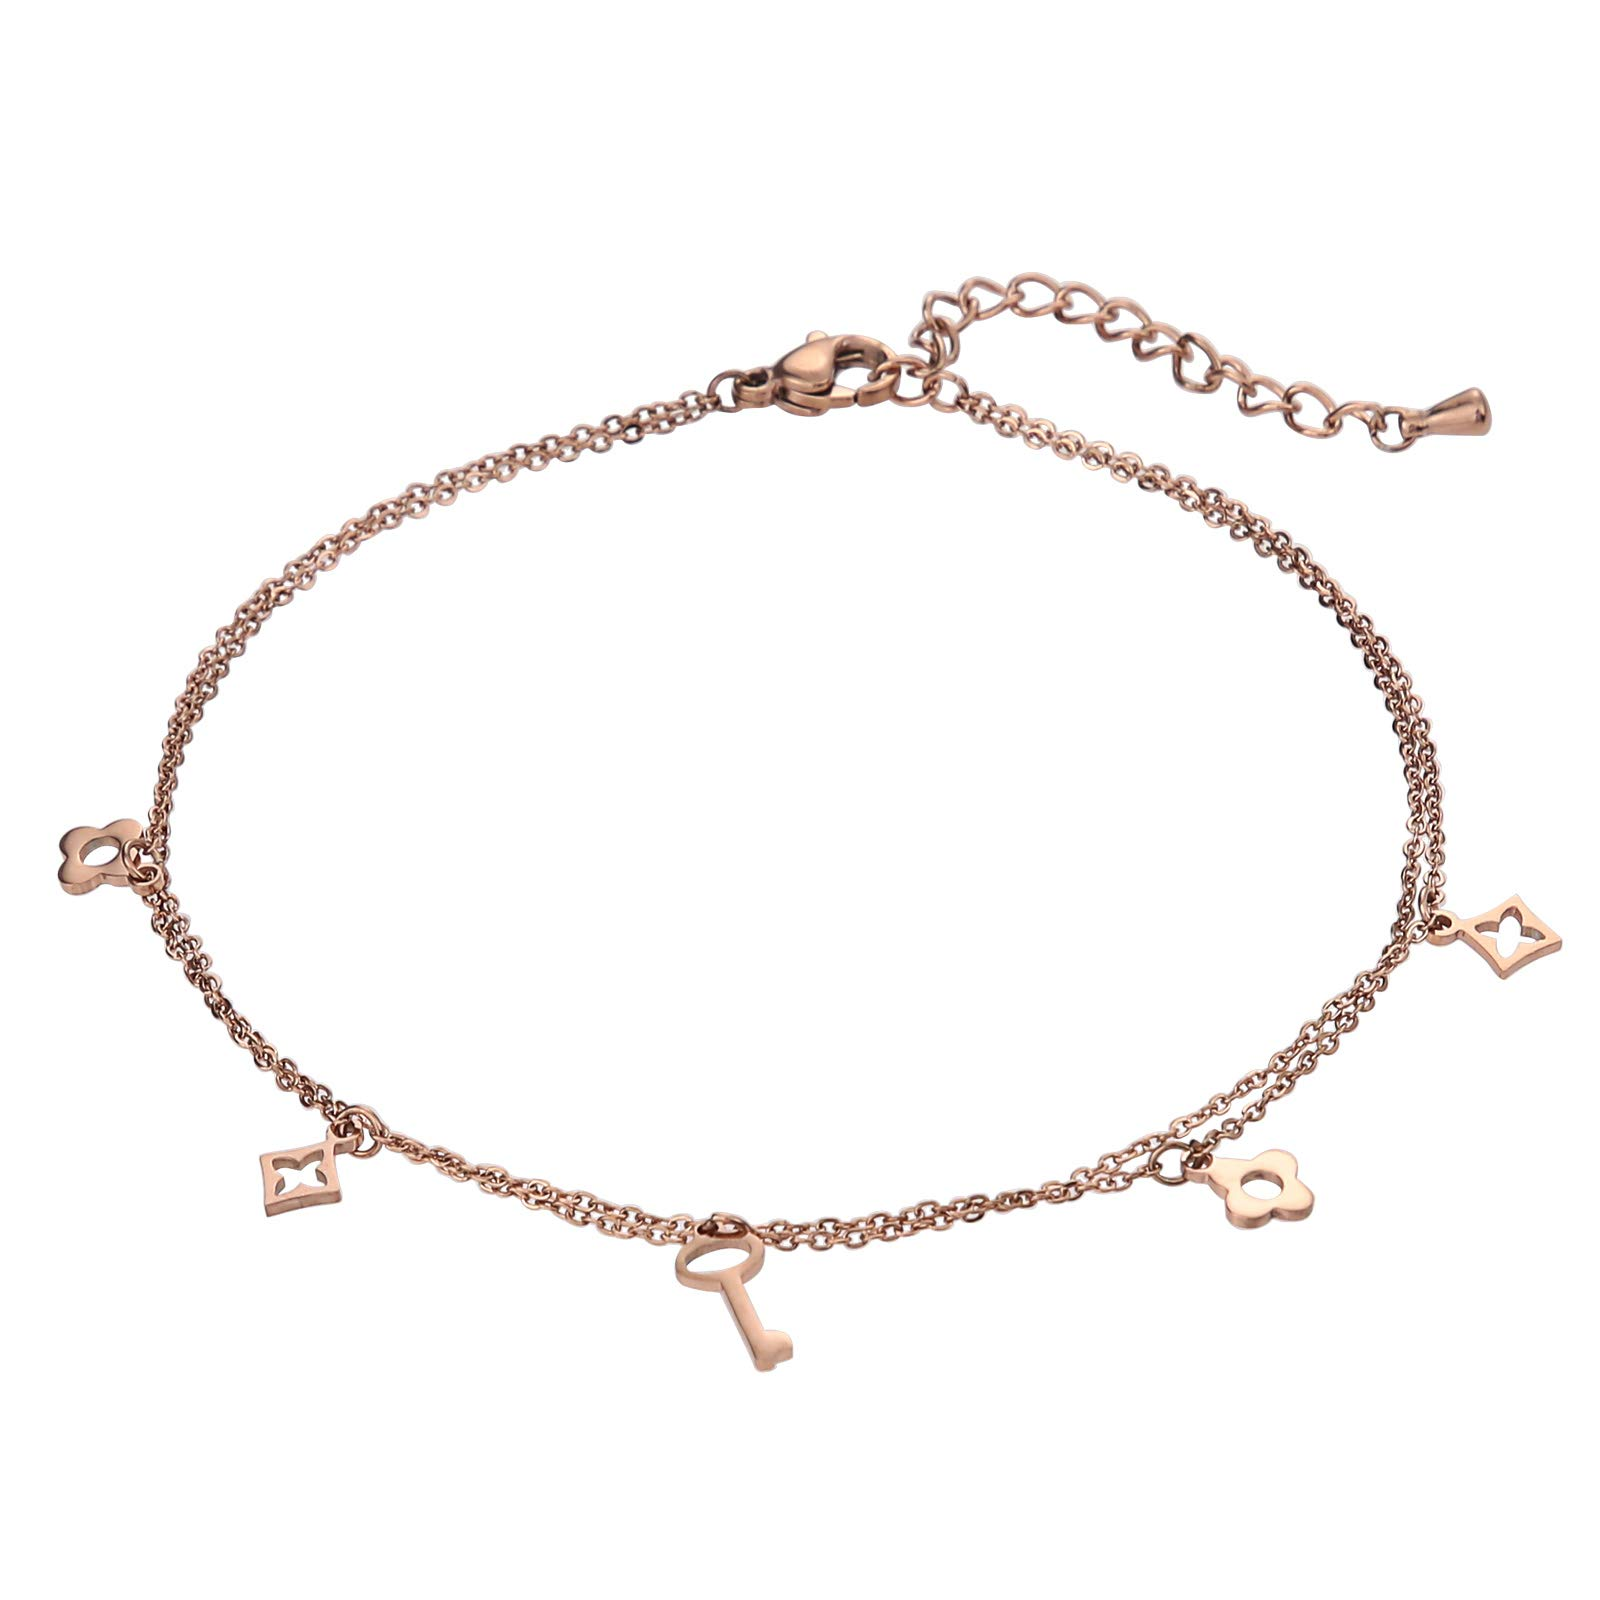 Beydodo Stainless Steel Ankle Bracelet Large Foot Jewelry for Beach Wedding Double-Layered Flower